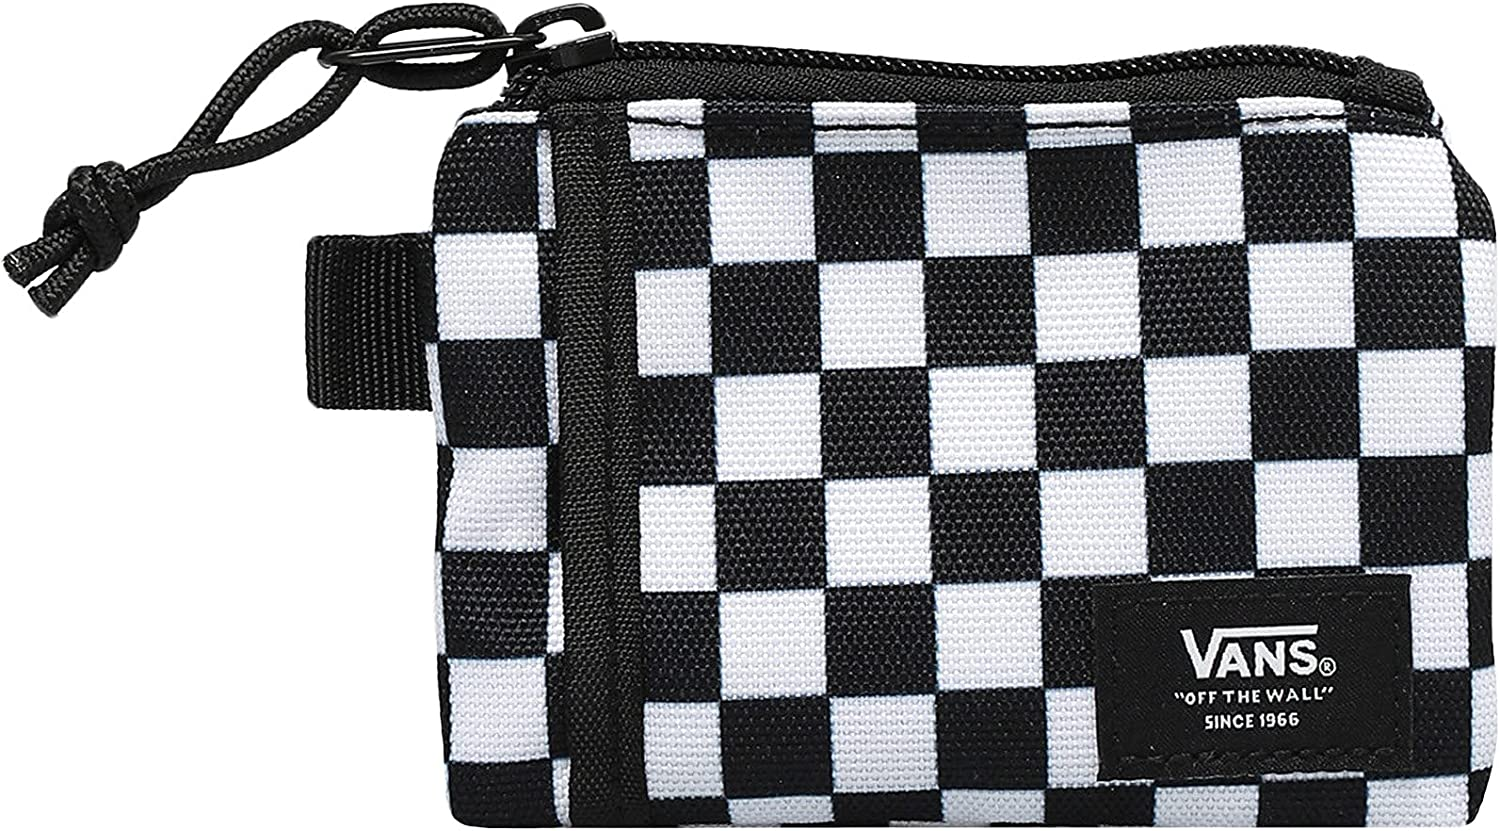 Vans Factory outlet Unisex's Very popular Pouch Accessory-Travel Wallet